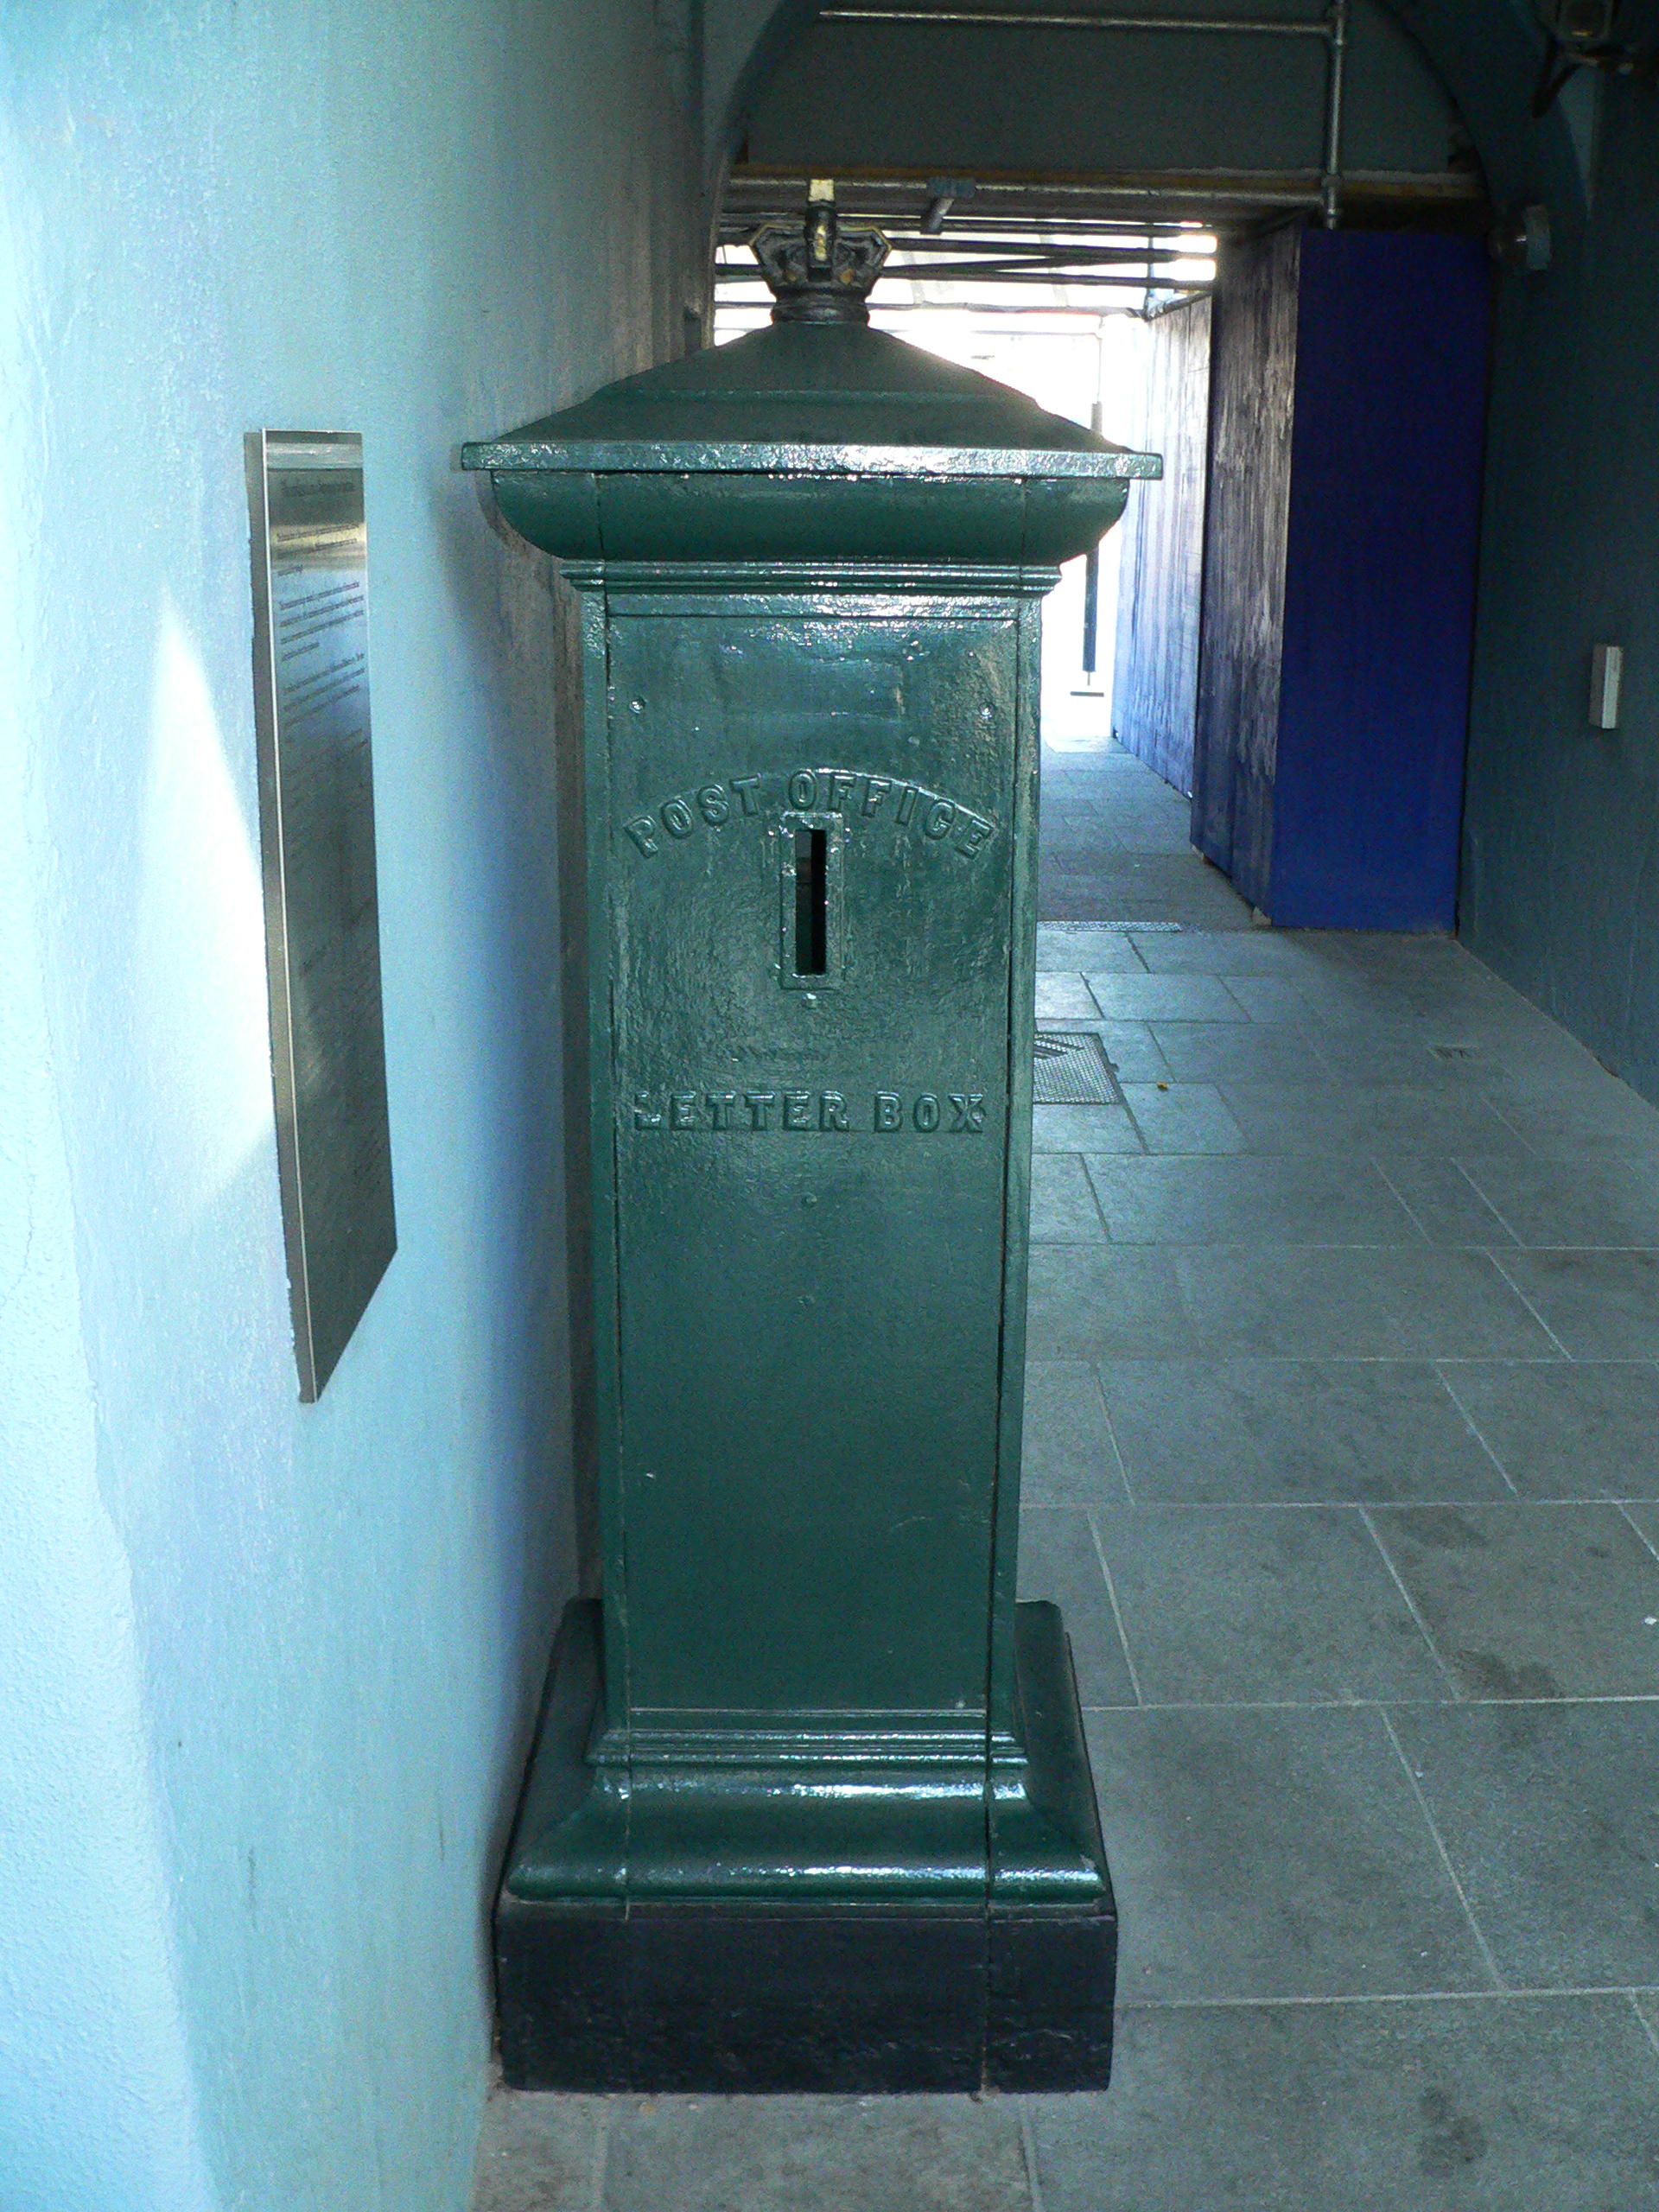 Only known example of an 1850s Ashworth pillar box originally installed in Ireland and now preserved in Dublin Museum, in green livery. Photo taken on November 6, 2007.